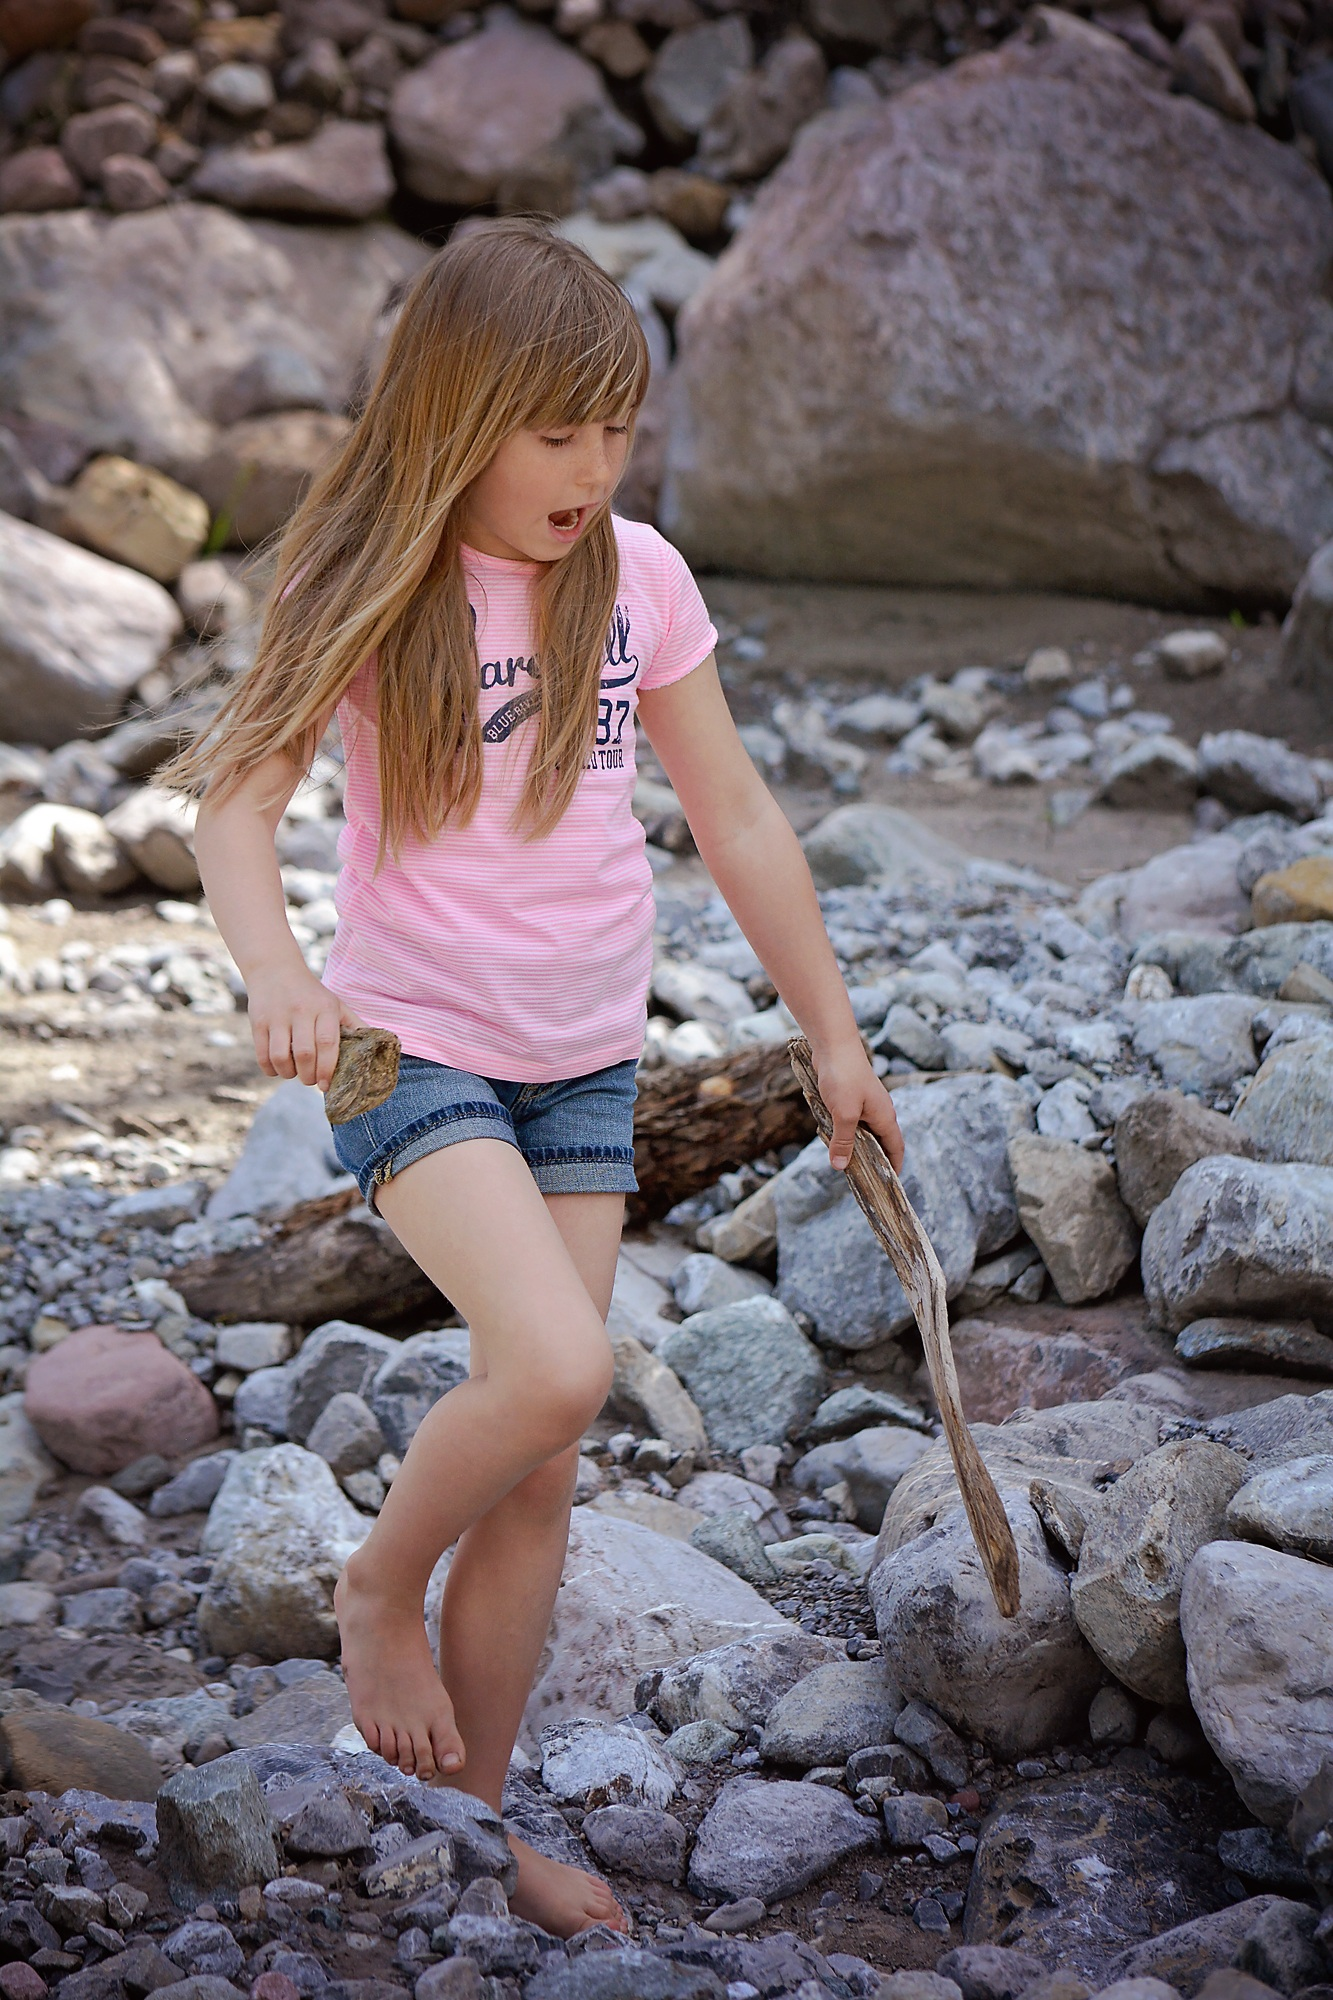 Little Girl With Long Hair On The Rocks Near The Pond Free